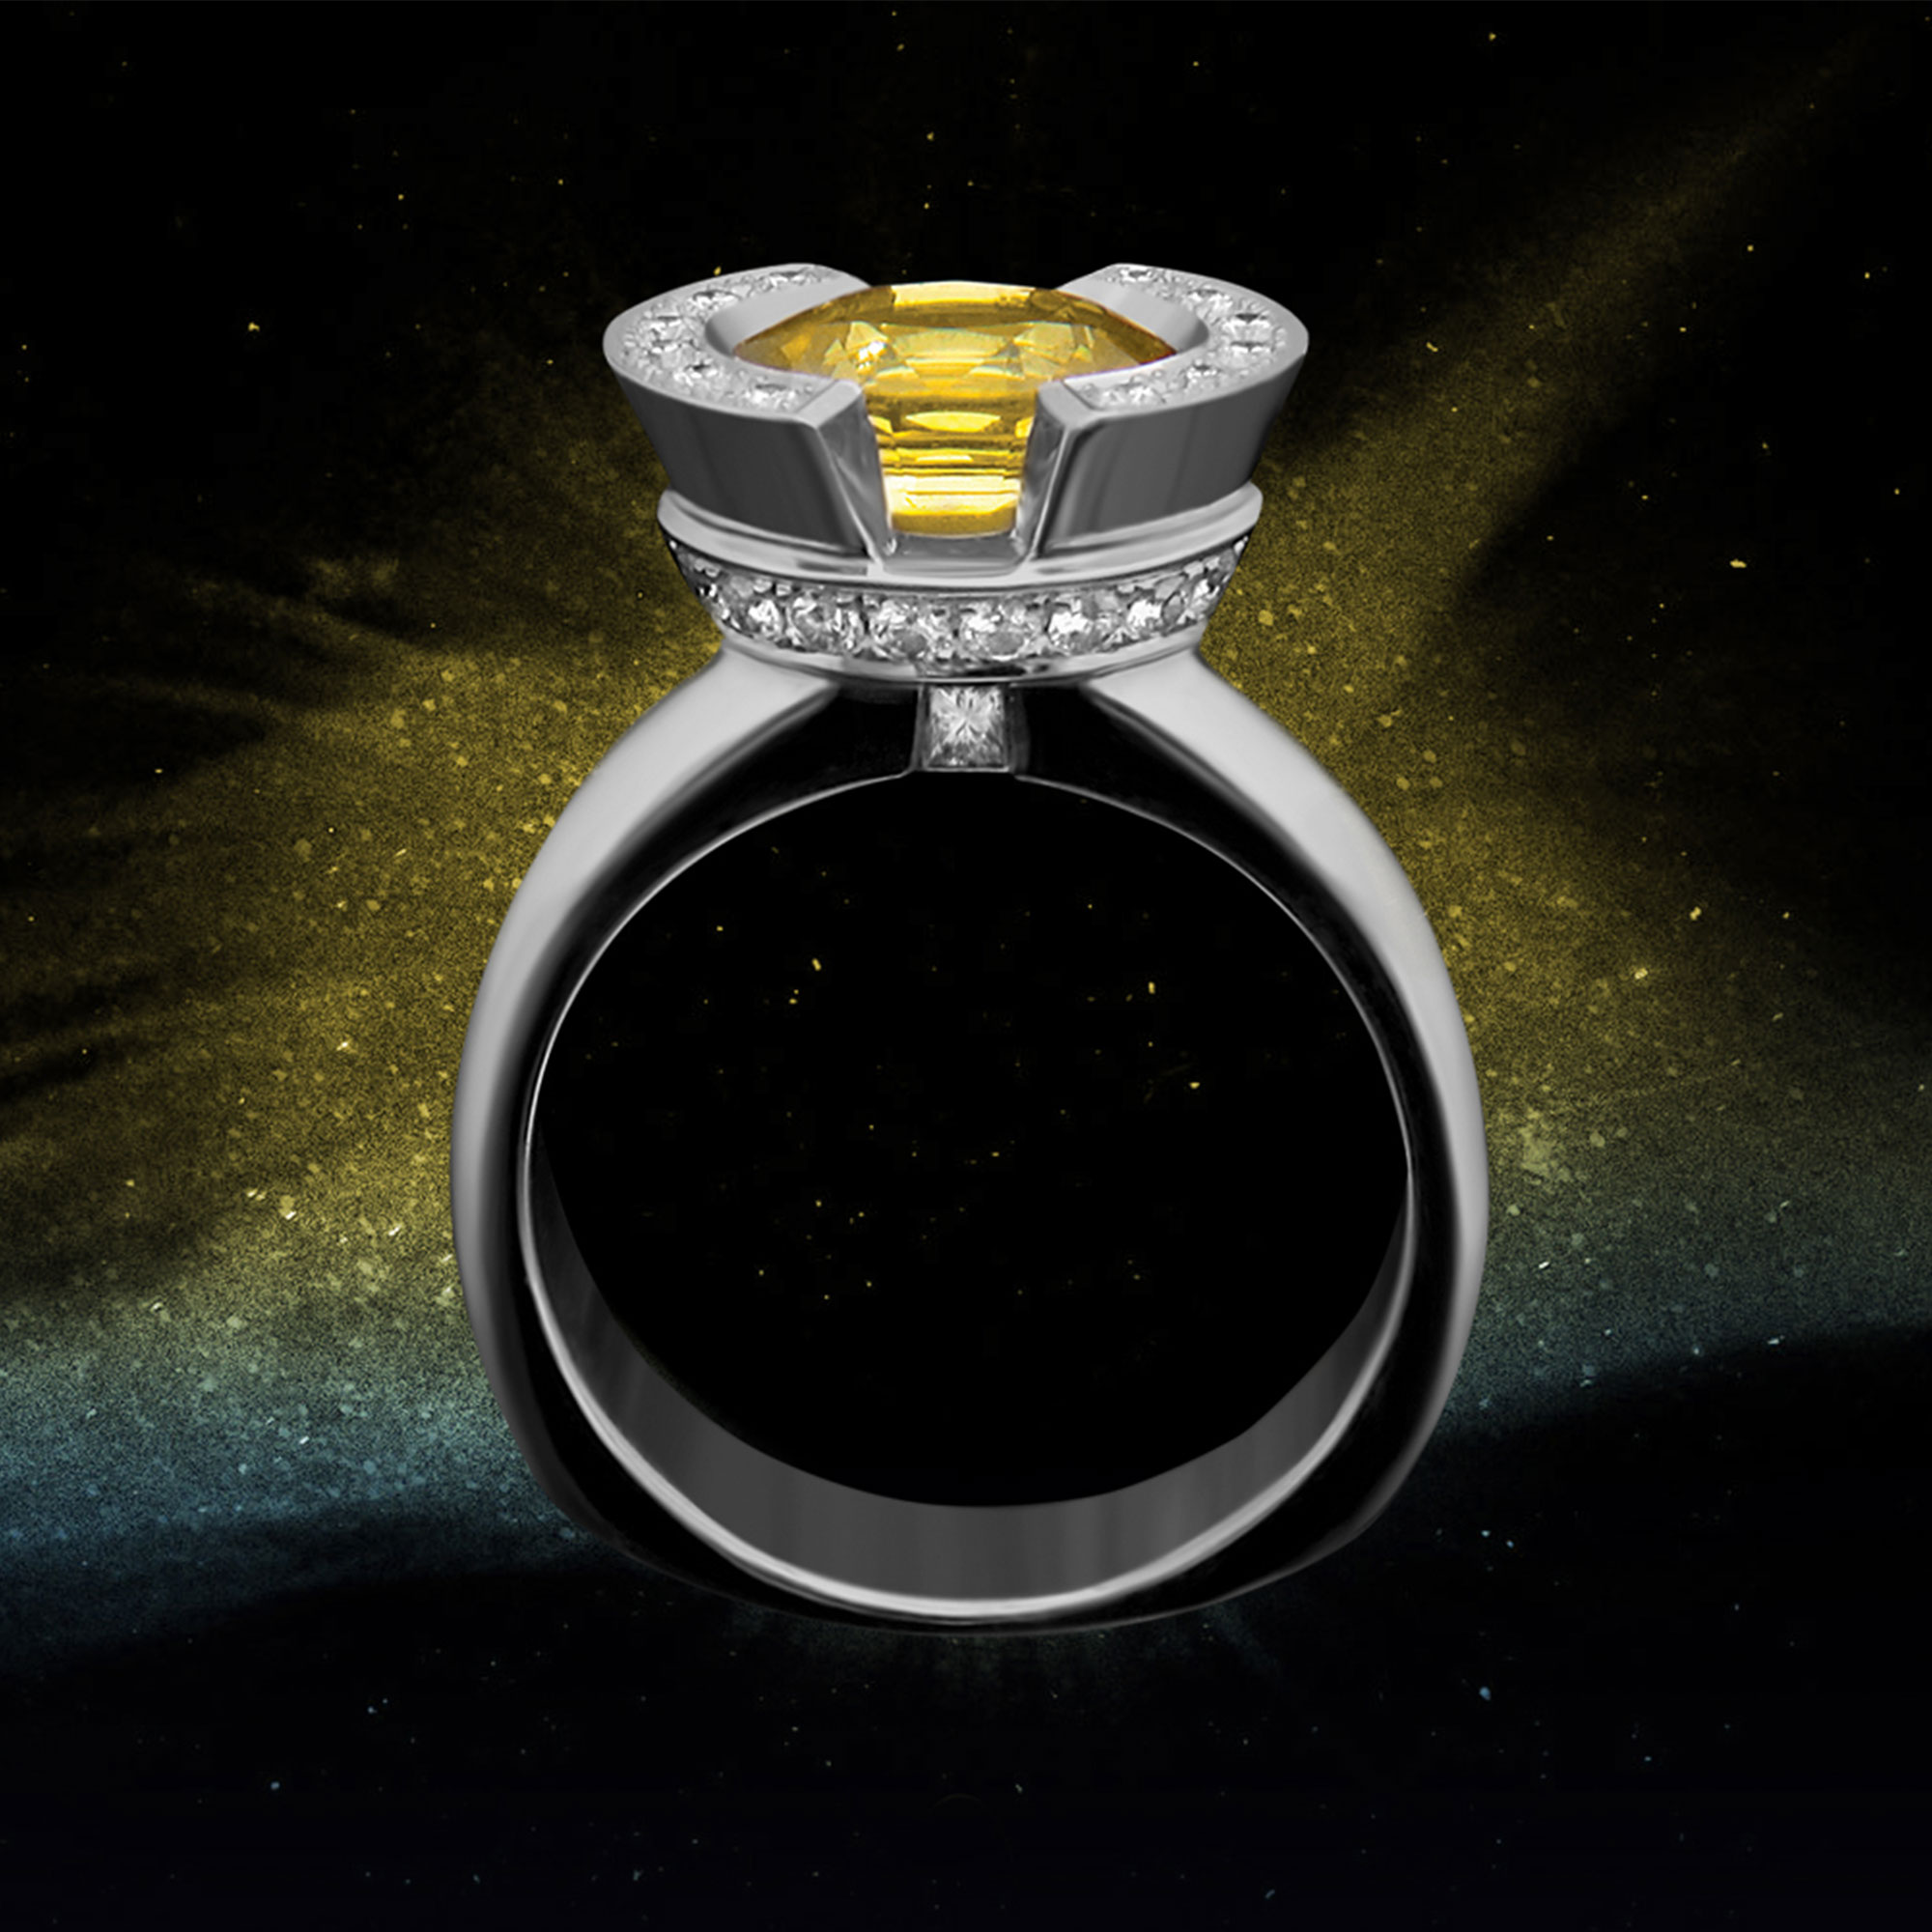 FRIDA | Fine Jewellery. Celestial Collection. Luna ring in 18kt white gold set with a yellow sapphire and diamonds.